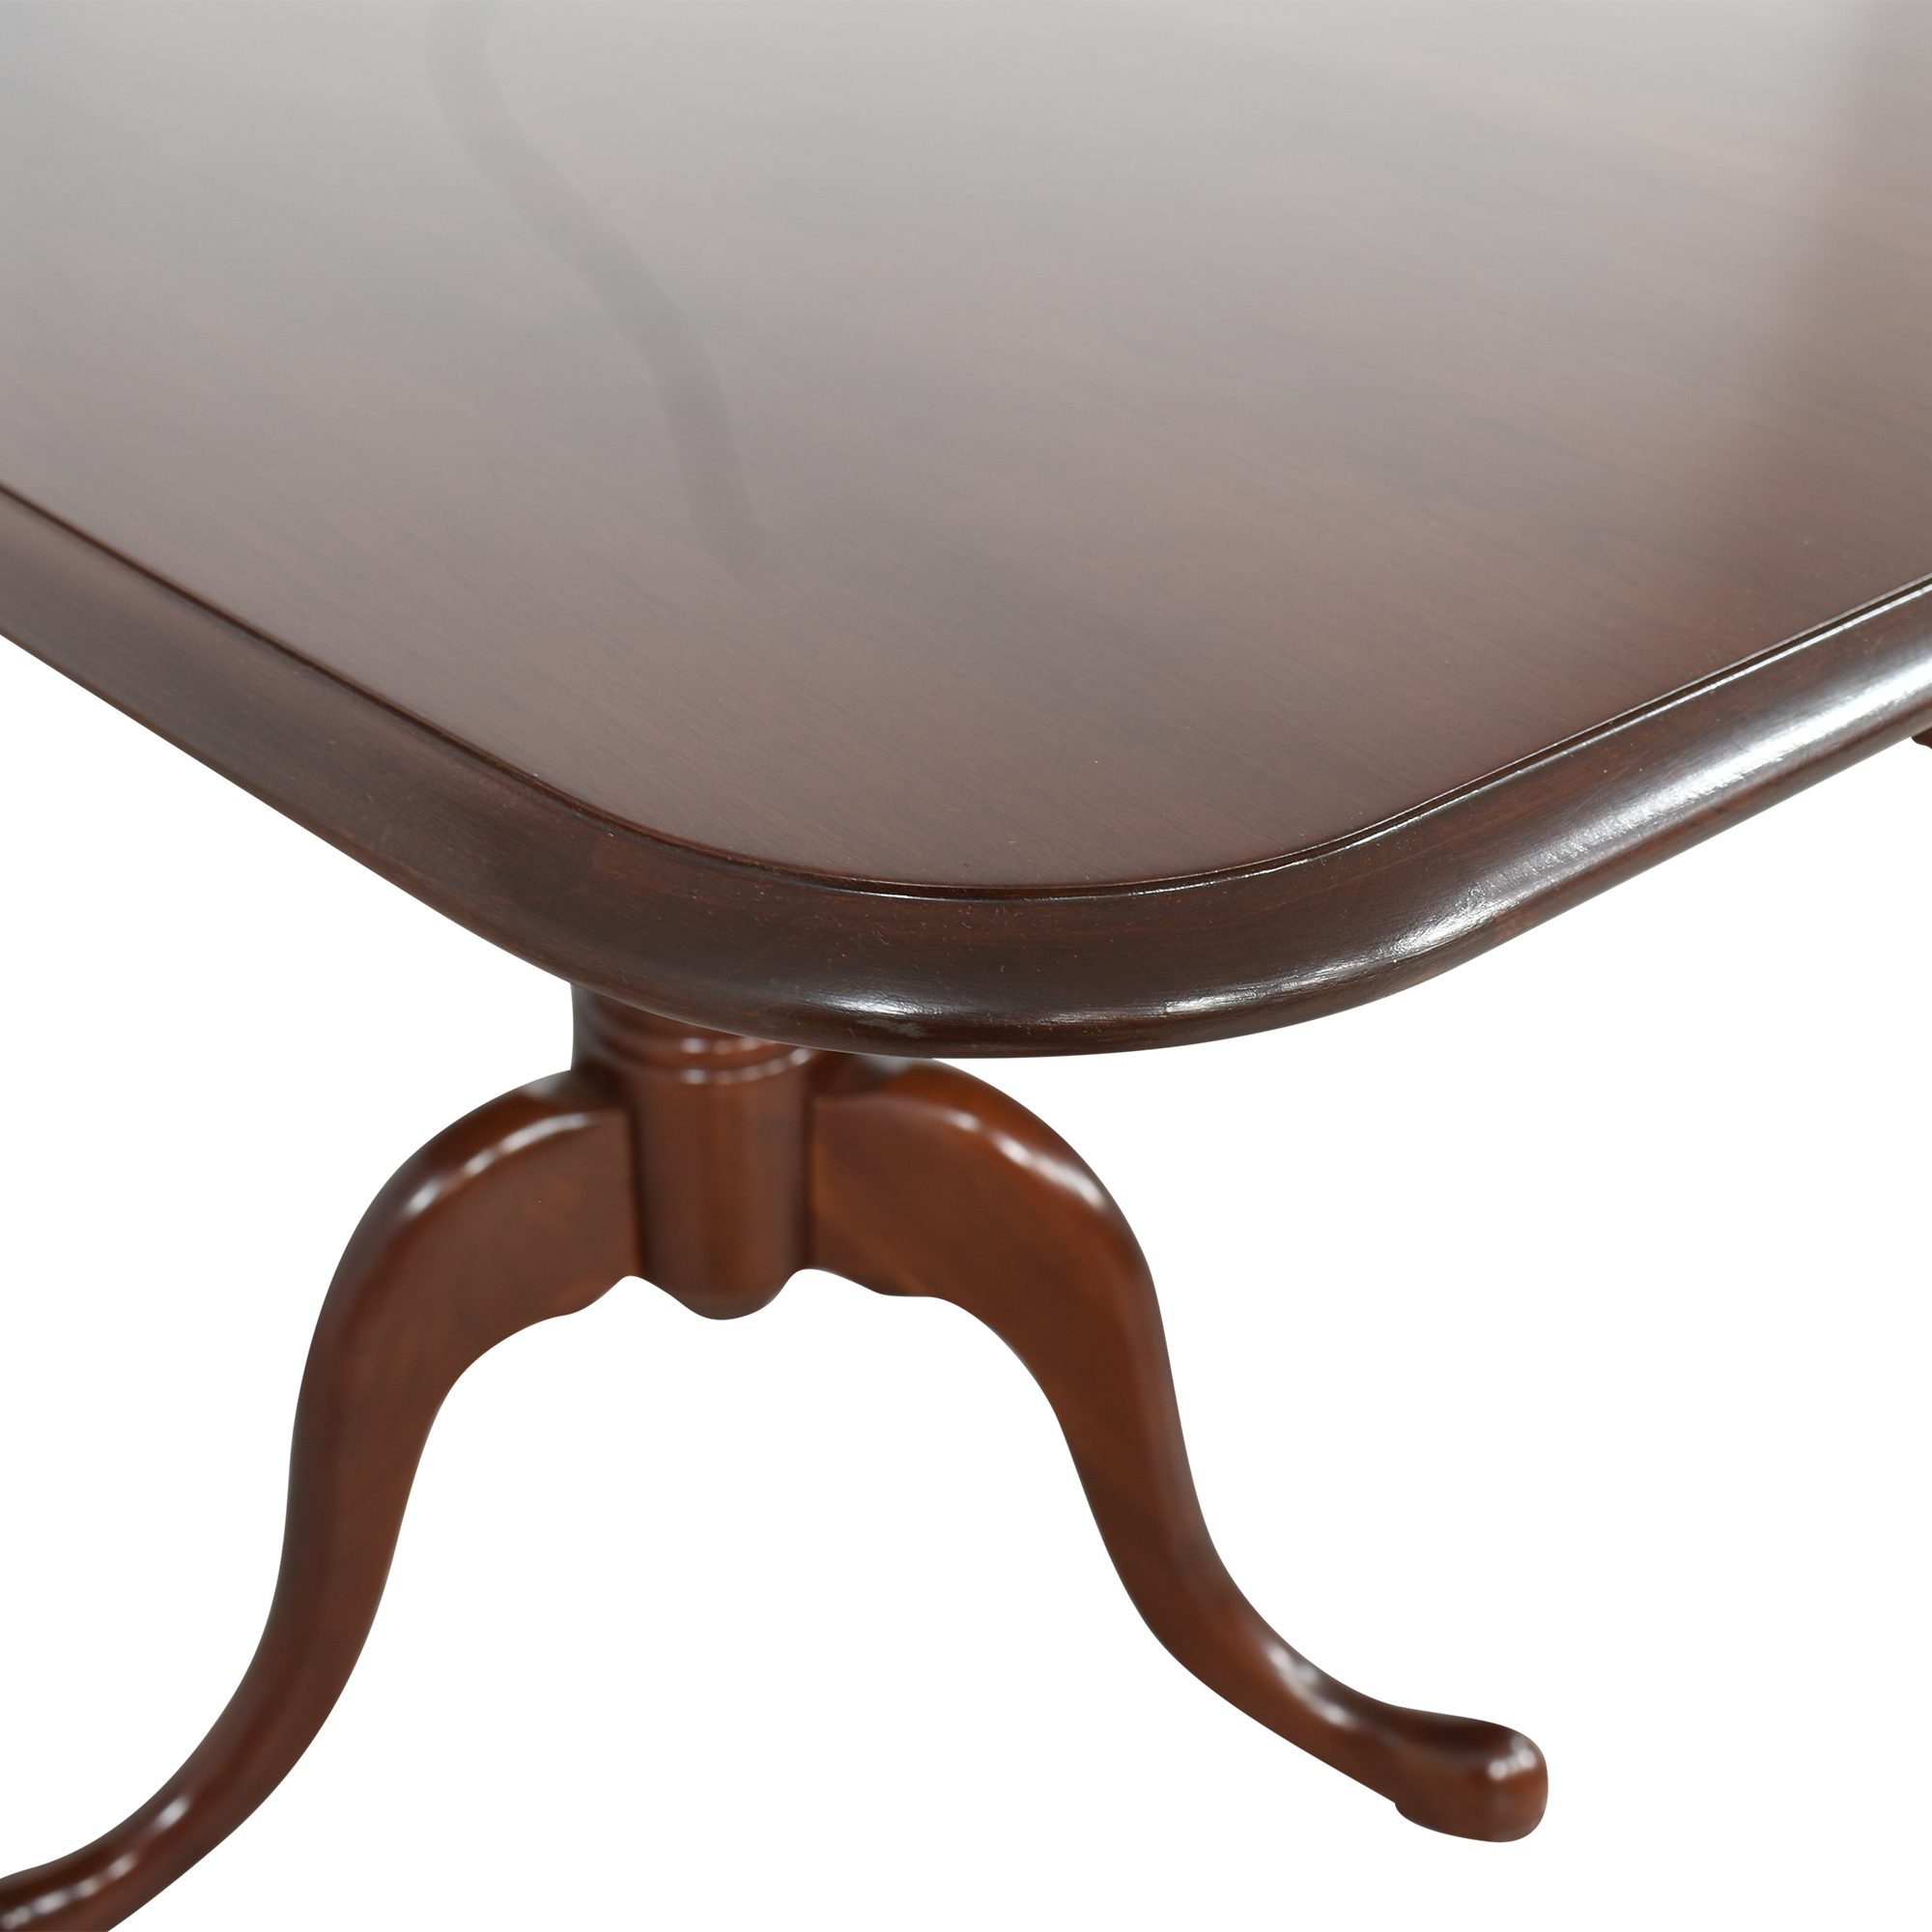 The Colonial Furniture Company The Colonial Furniture Company Extendable Dining Table dimensions